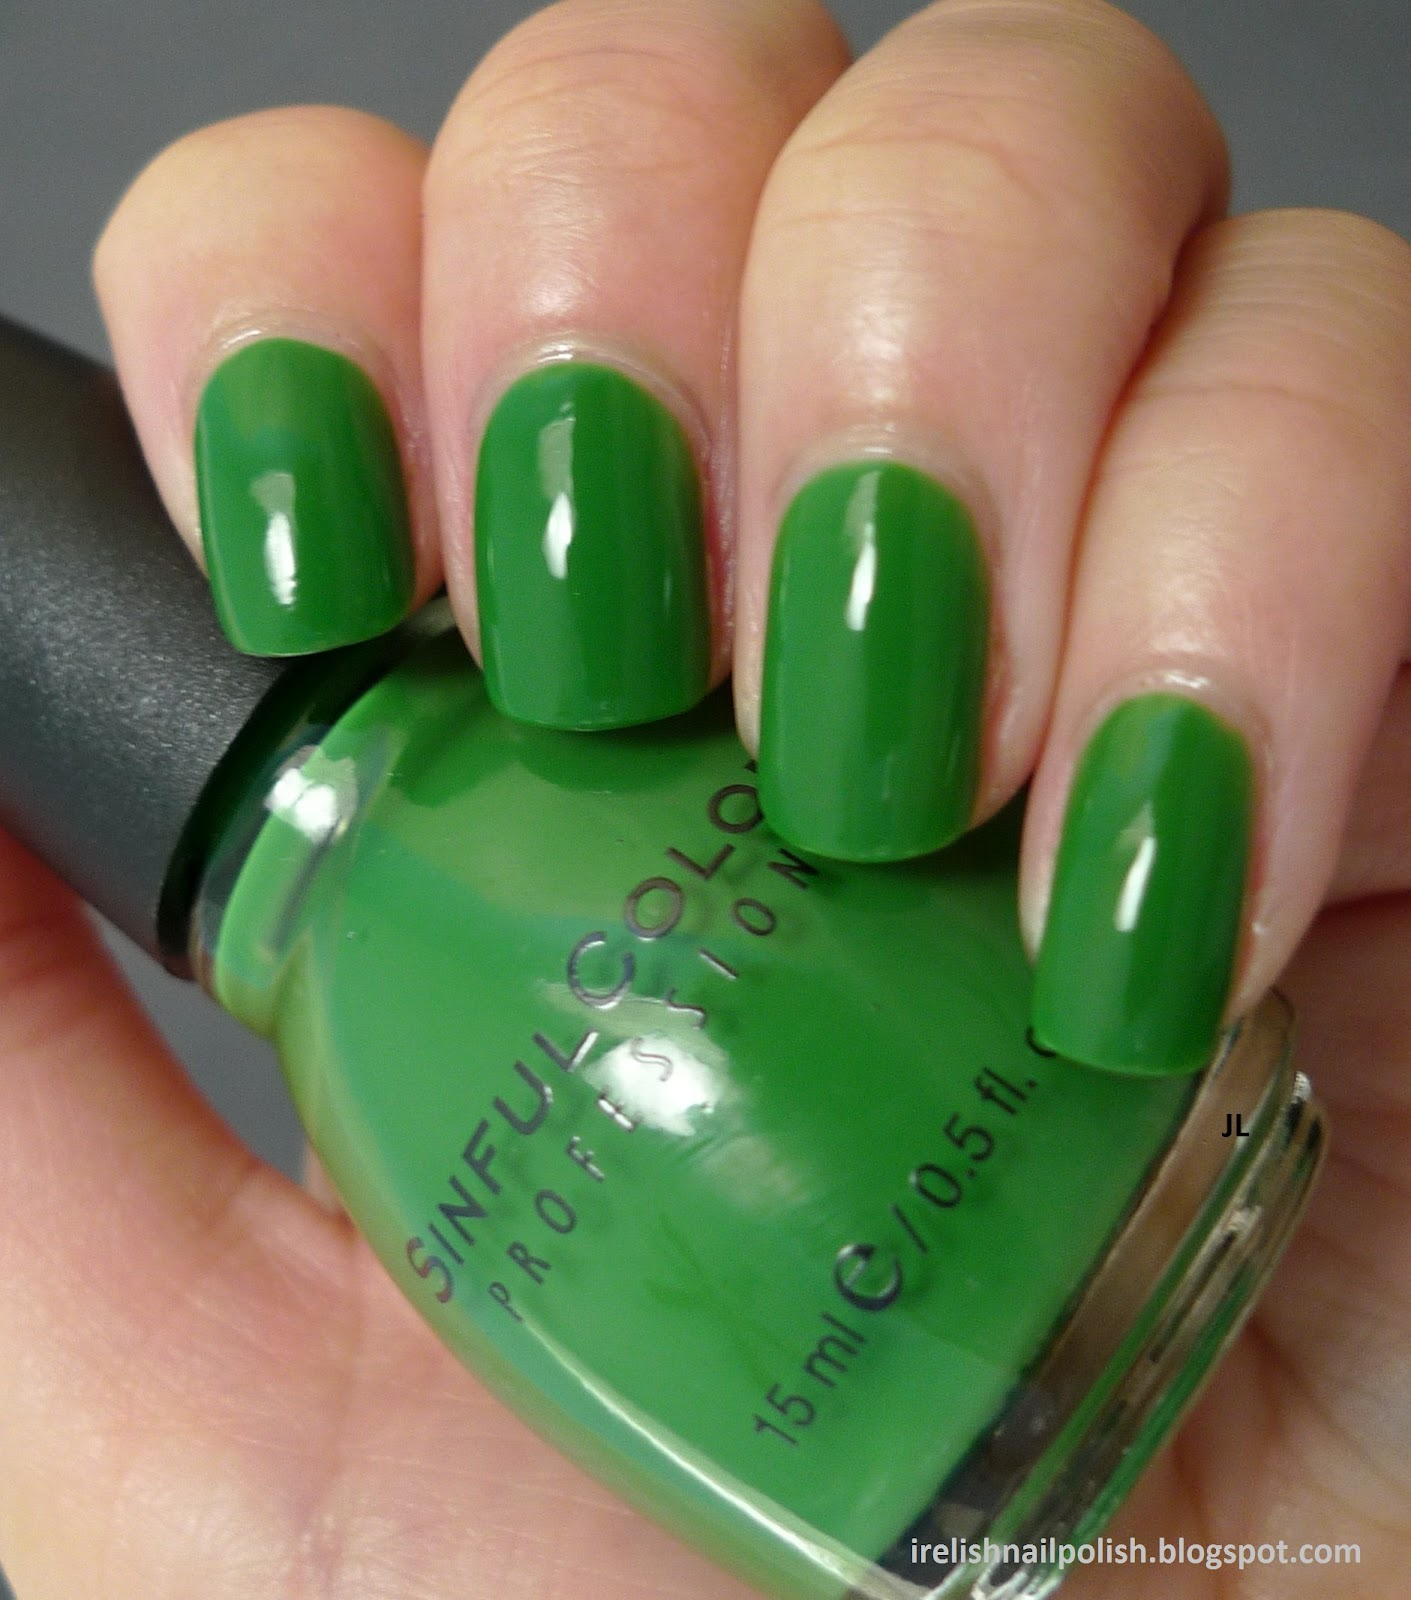 Just Like Other Jelly Polishes Exotic Green Is Easy To Apply Somewhat Transparent And Super Shiny After Applying Two Coats I Can Still See My Nail Line